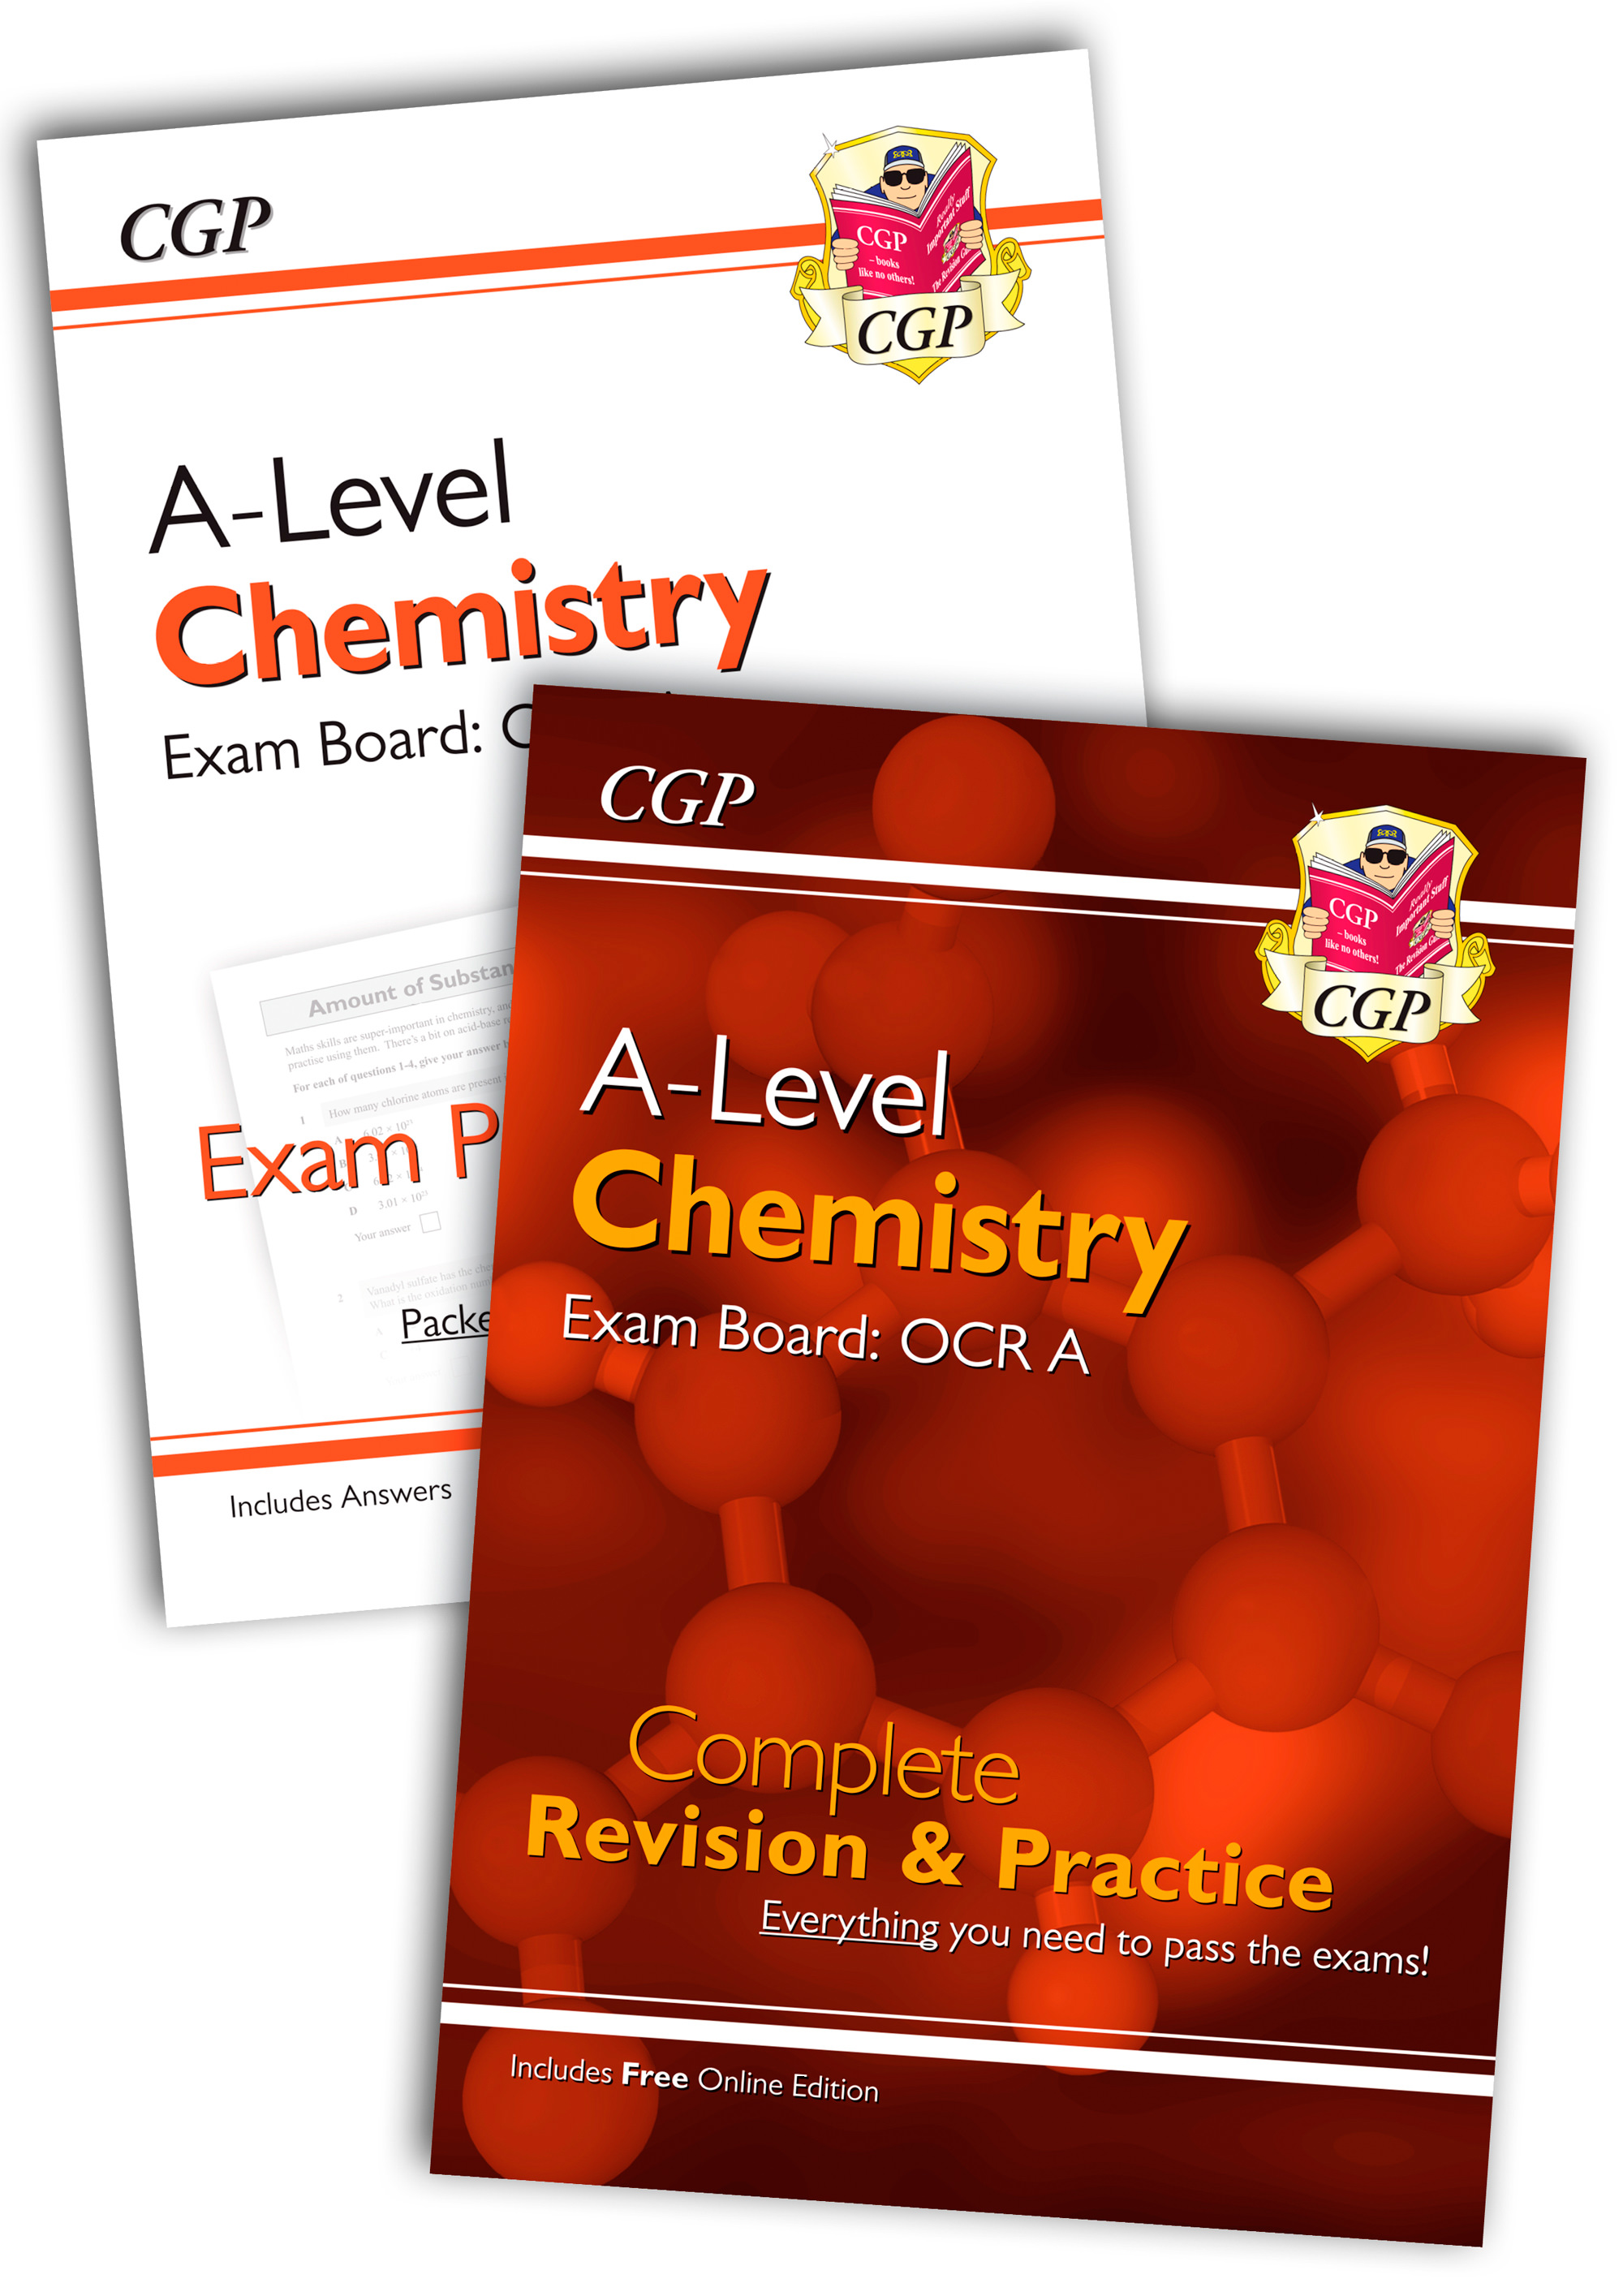 CRARQB71 - Complete Revision and Exam Practice A-Level Chemistry Bundle: OCR A Year 1 & 2